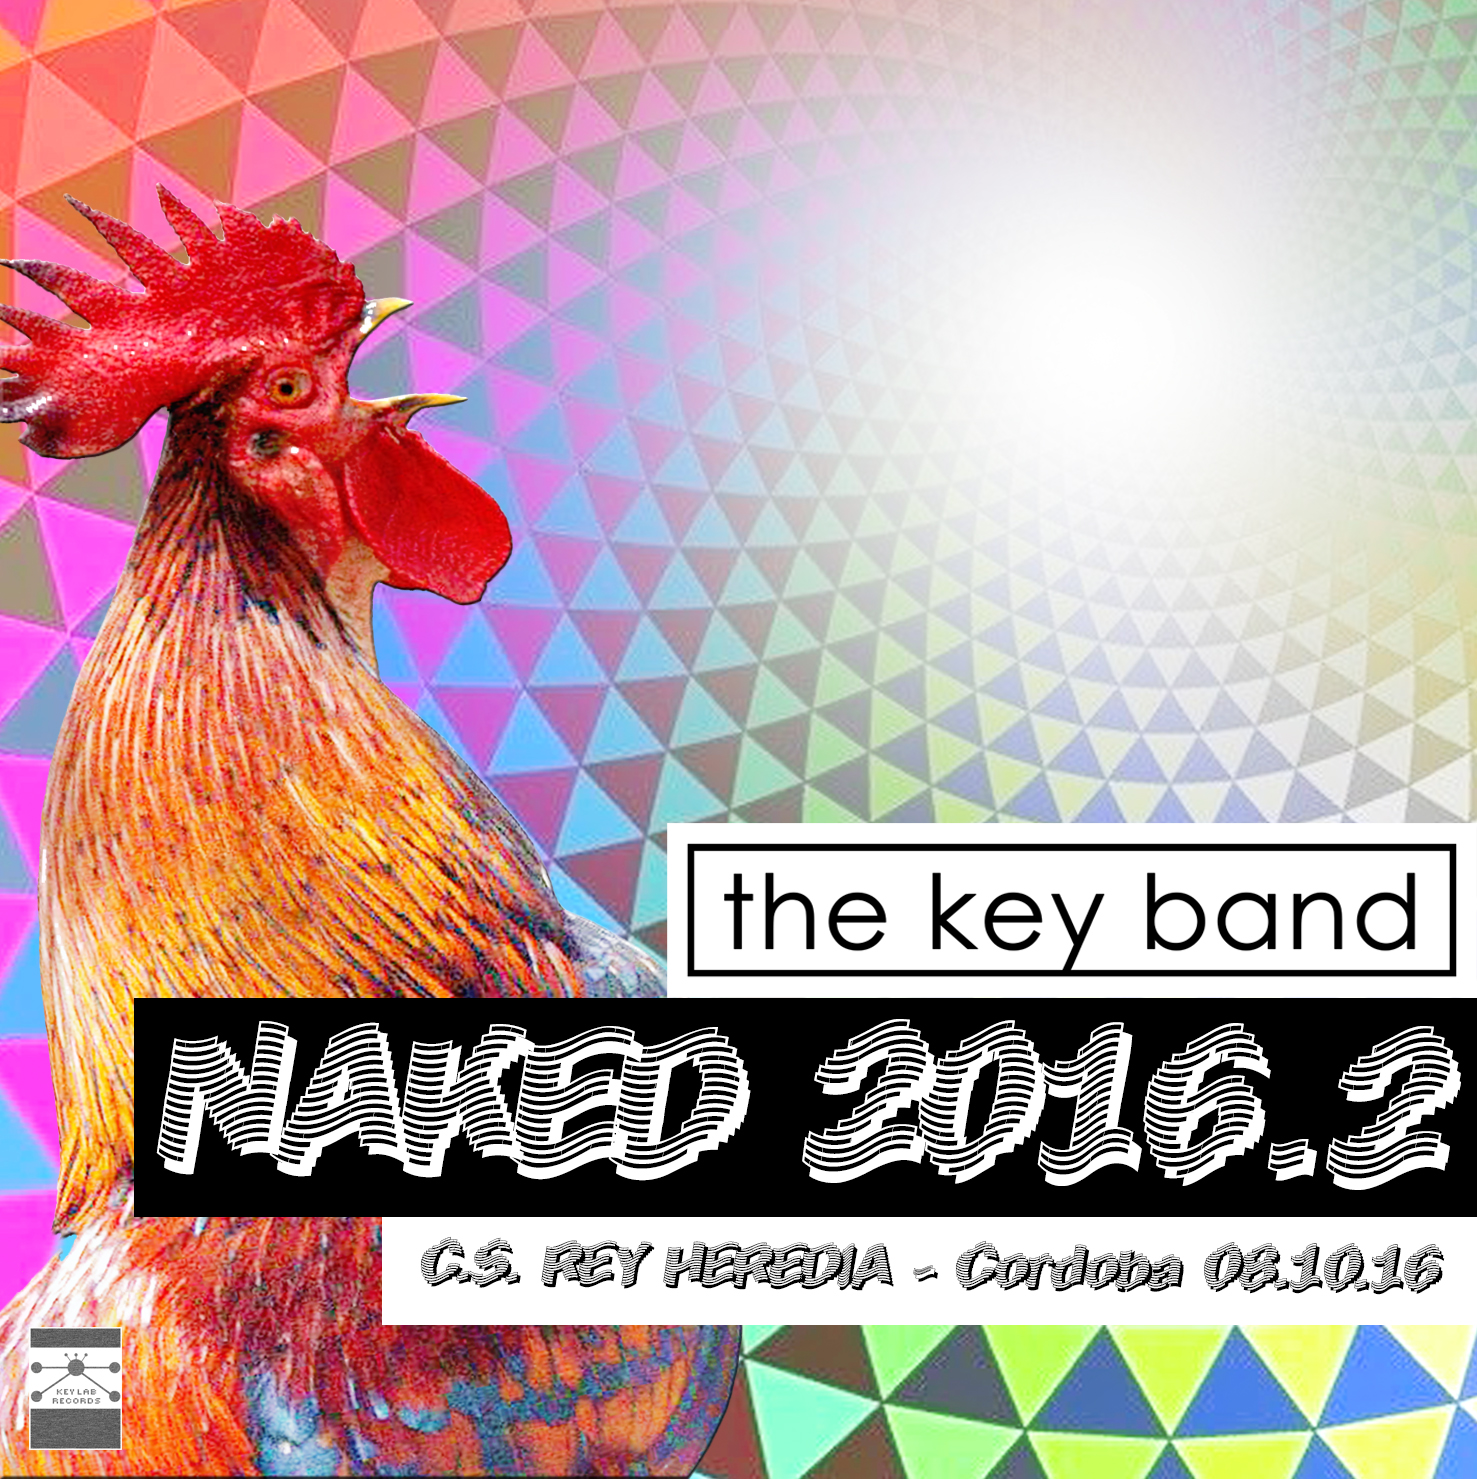 THE KEY BAND - NAKED 2016 CD